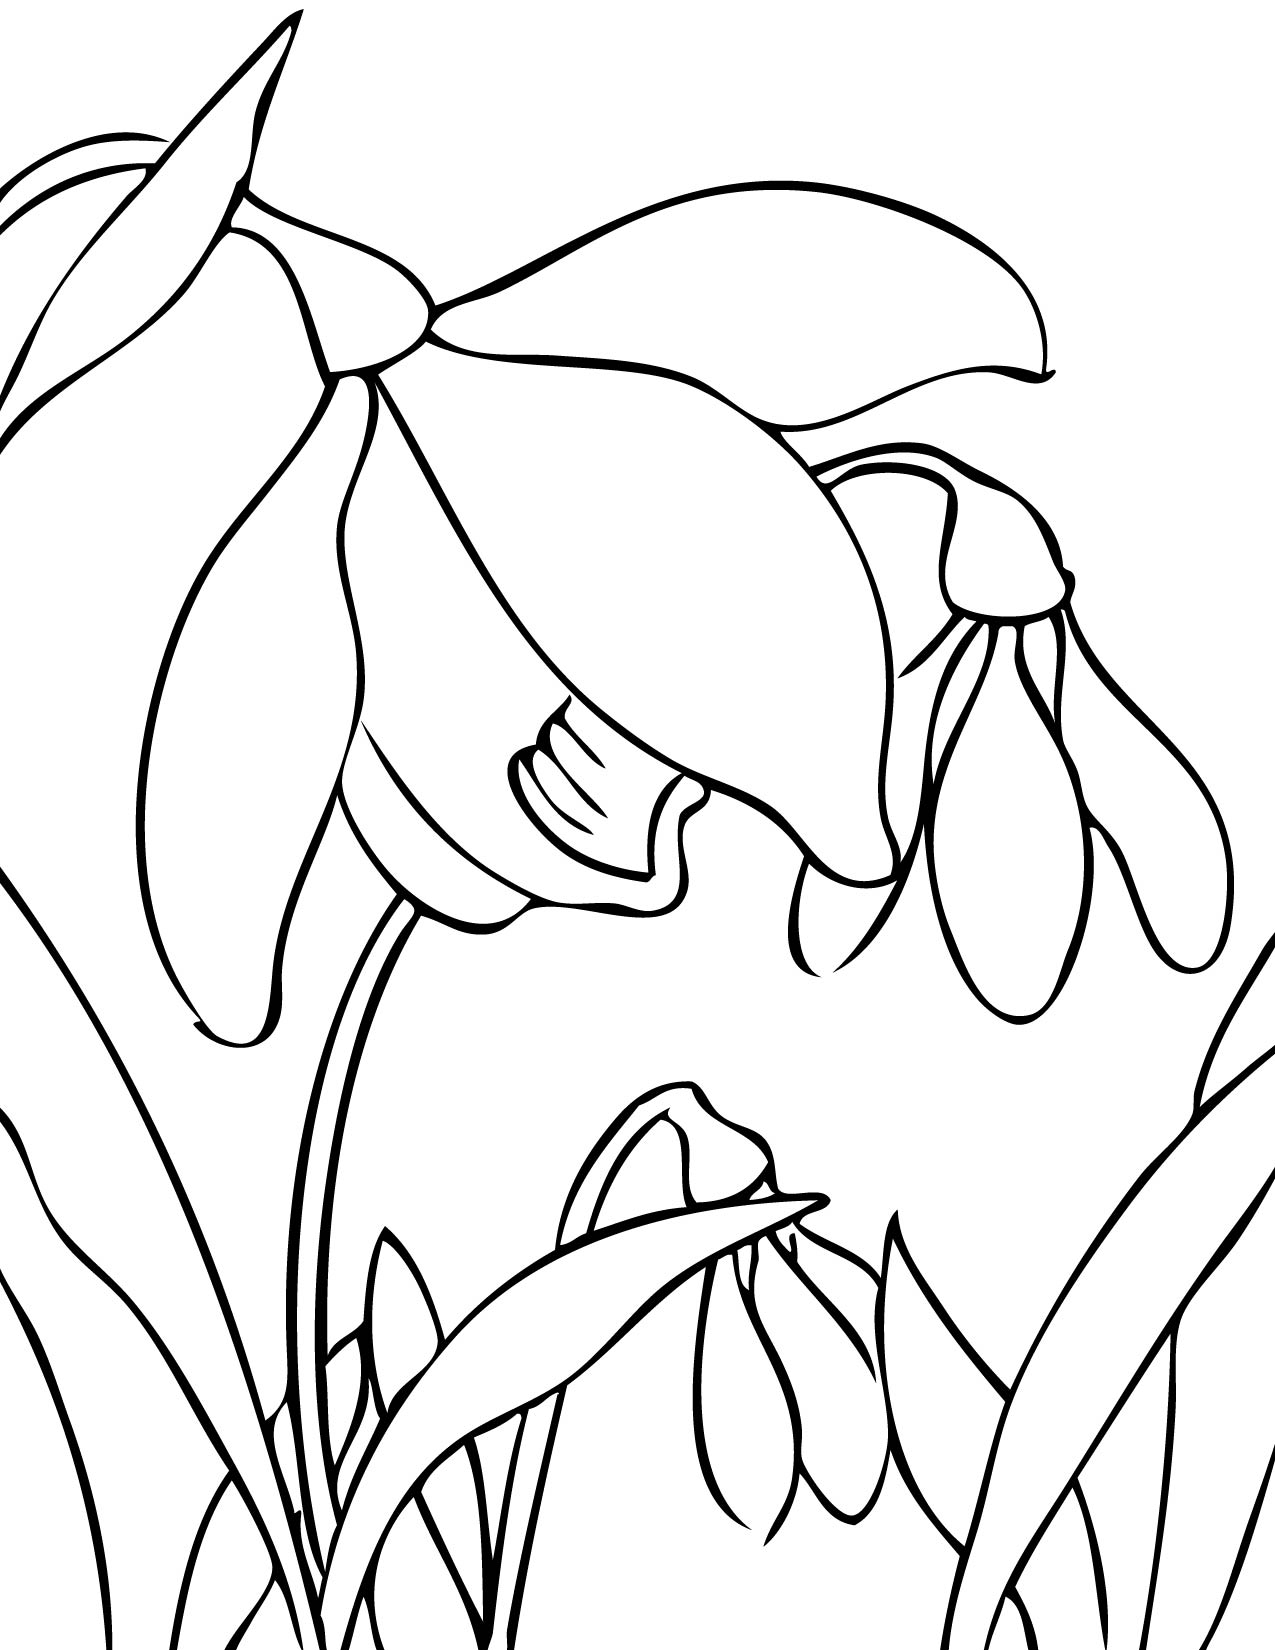 snowdrop coloring page handipoints